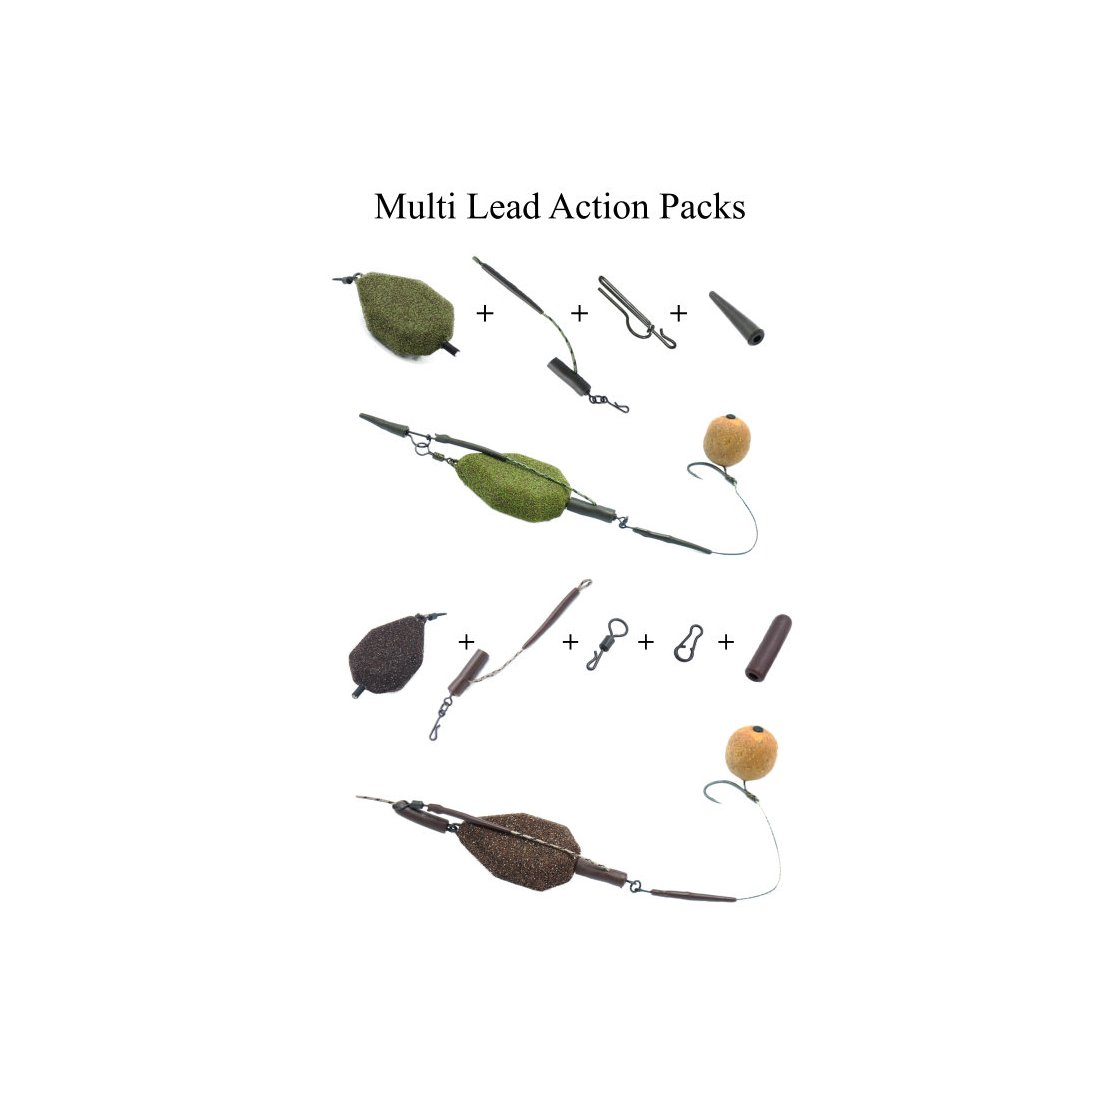 Poseidon Multi Lead Action Pack Outline System Brown 85g// 3oz